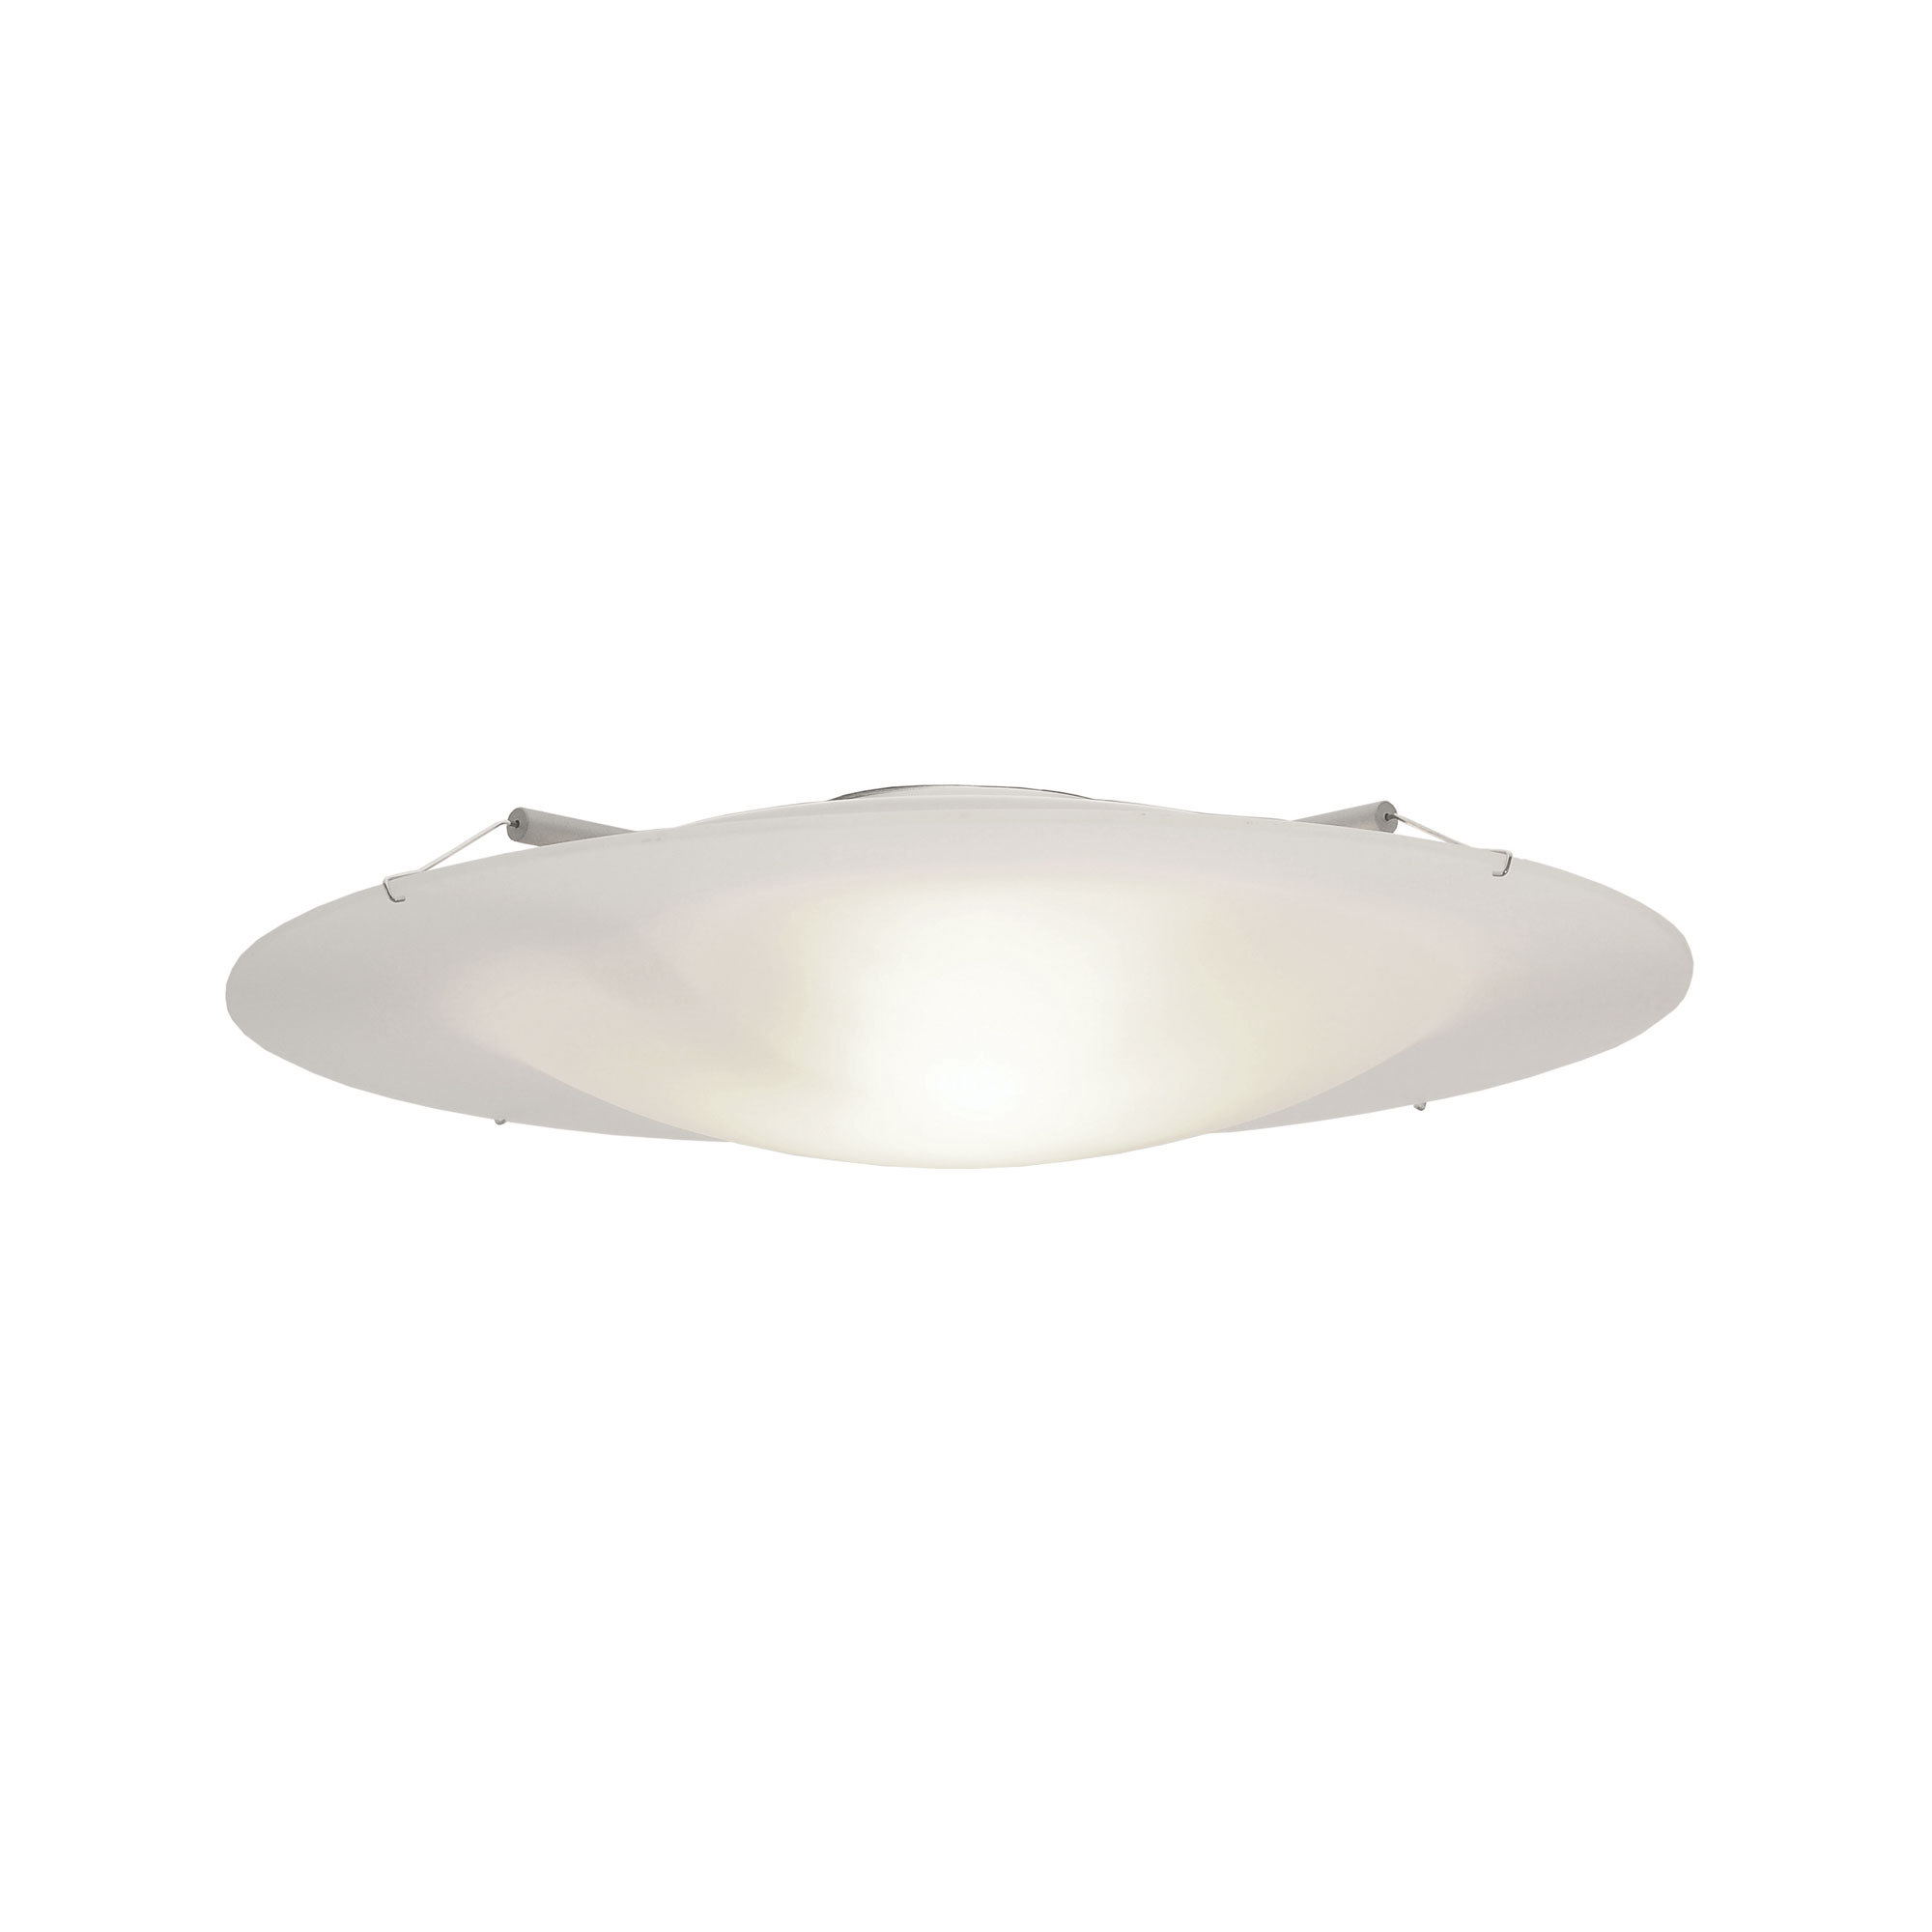 Sky round halogen ceiling light by pureedge lighting vsky rd 14 h1 vanilla sky round halogen ceiling light by pureedge lighting vsky rd 14 h1 mozeypictures Images